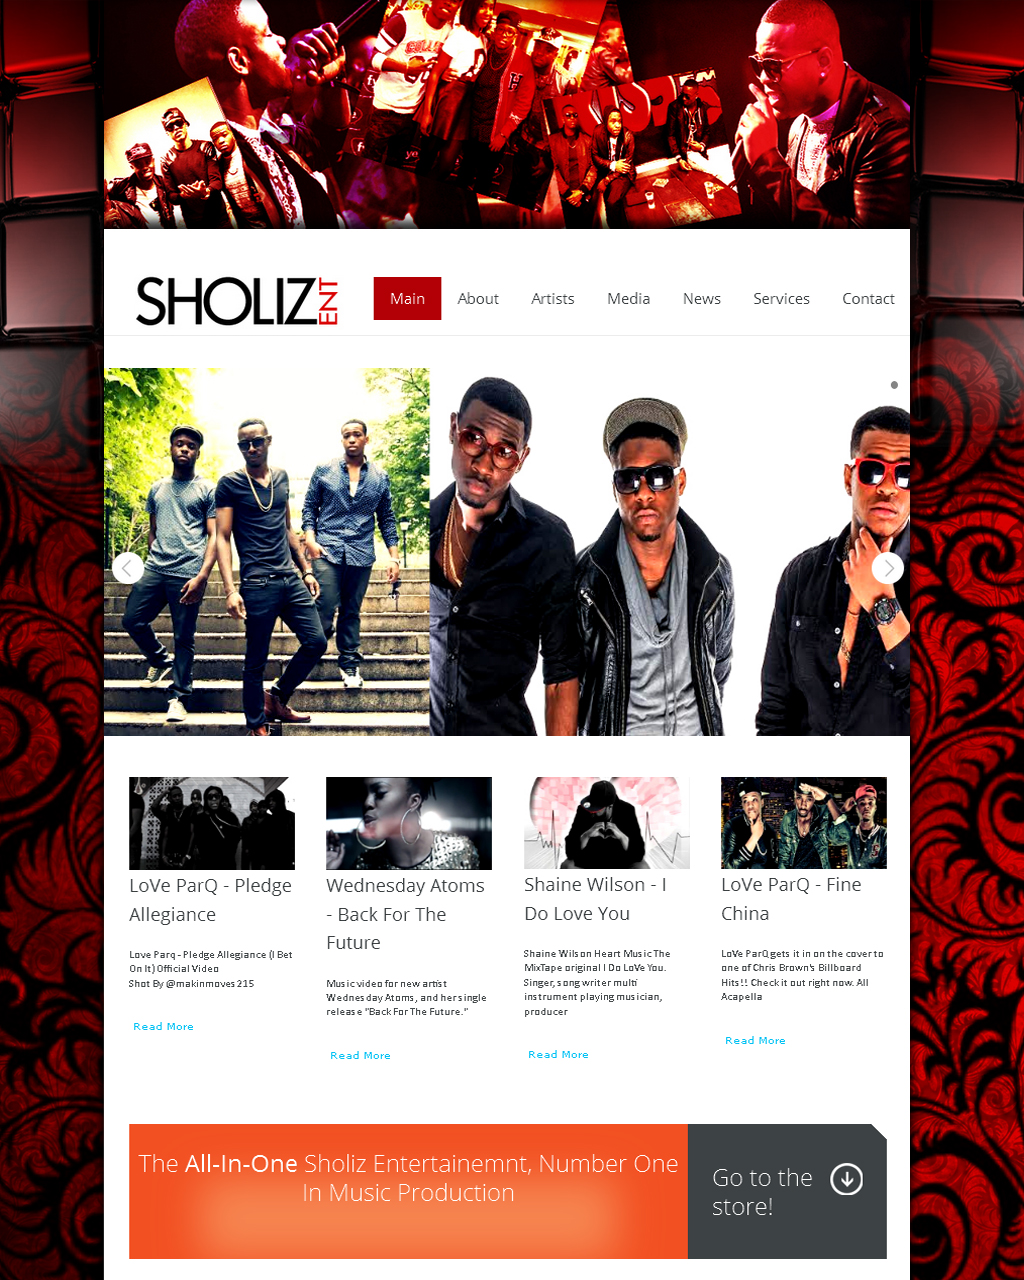 SHO GALL Sholizentertainment.com [By IGMM1]